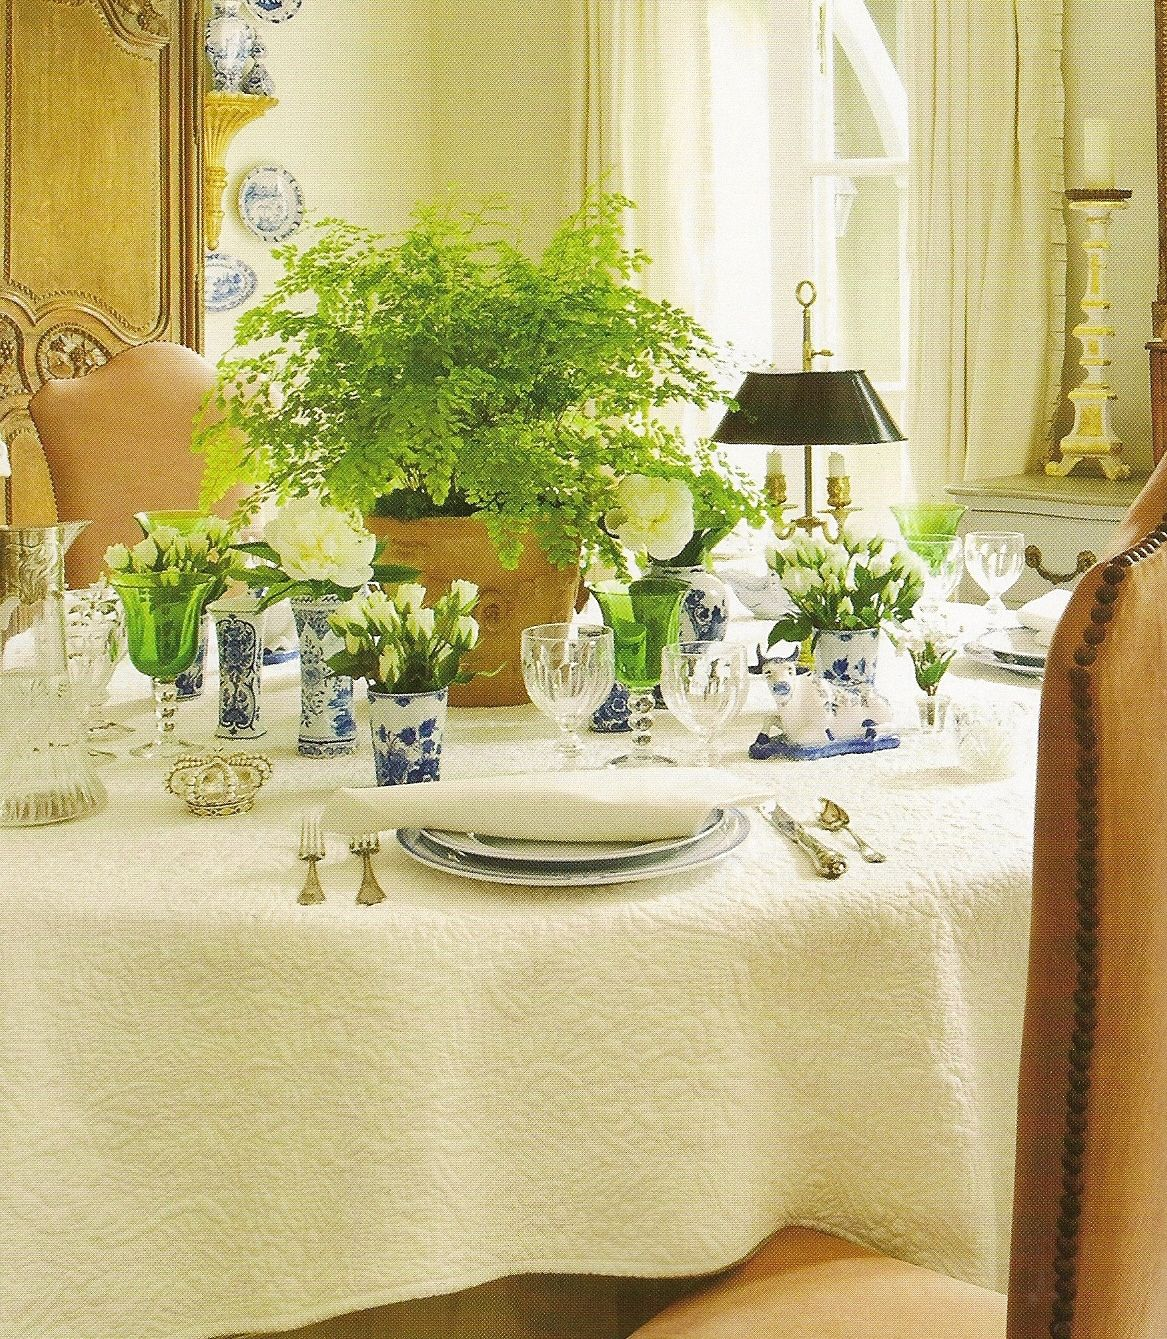 Tables amp chairs children s boxborough library library interiors - Use Of A Maidenhair Fern As The Centerpiece Adds Color And Delicacy Liking The Tiny